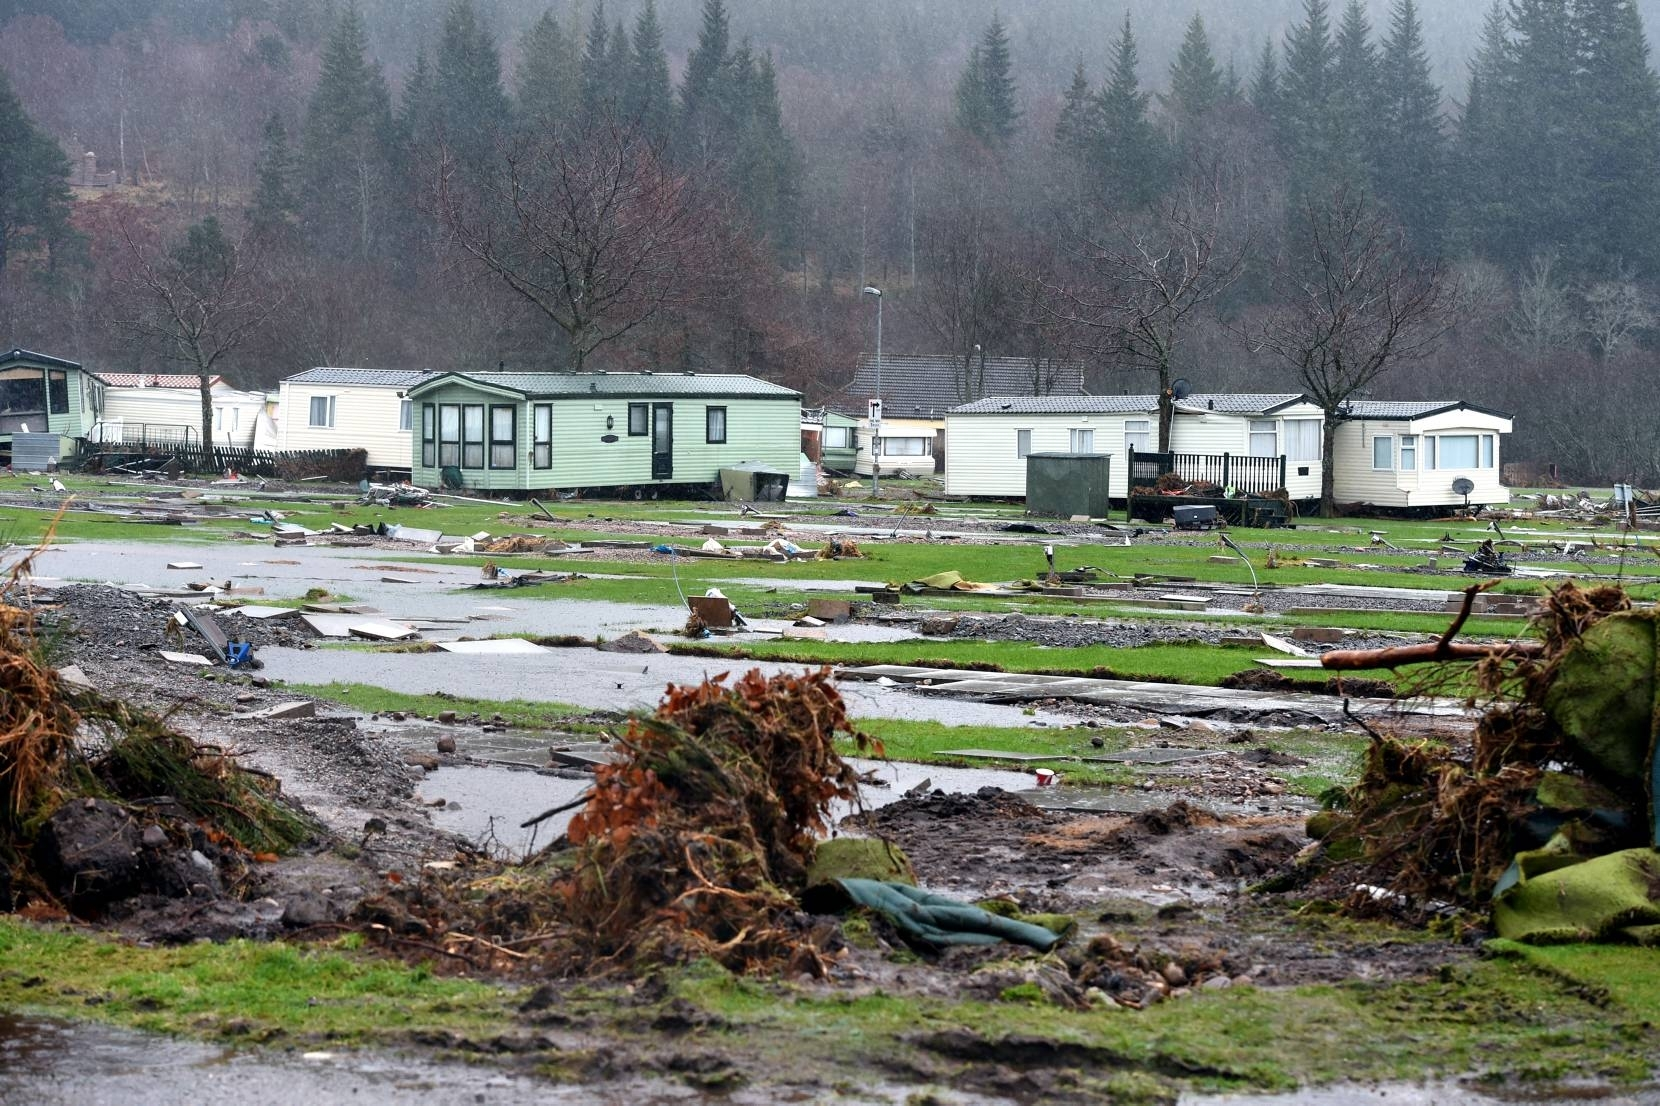 Flooding in Ballater. The caravan park. Picture by Jim Irvine 7-1-16